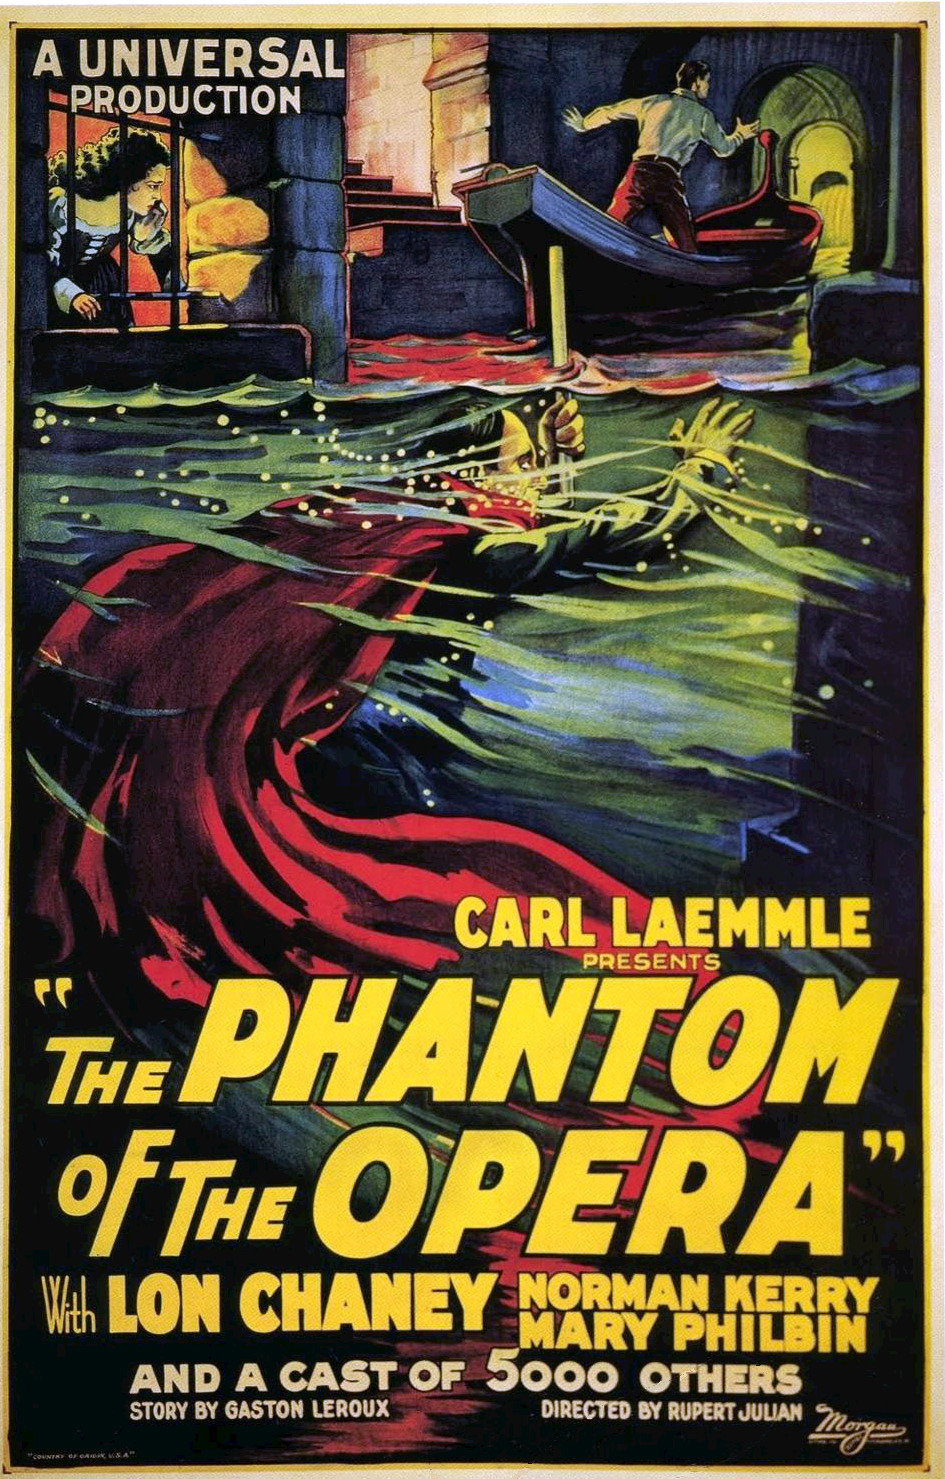 File:The Phantom of the Opera (1925 film).jpg - Wikimedia Commons